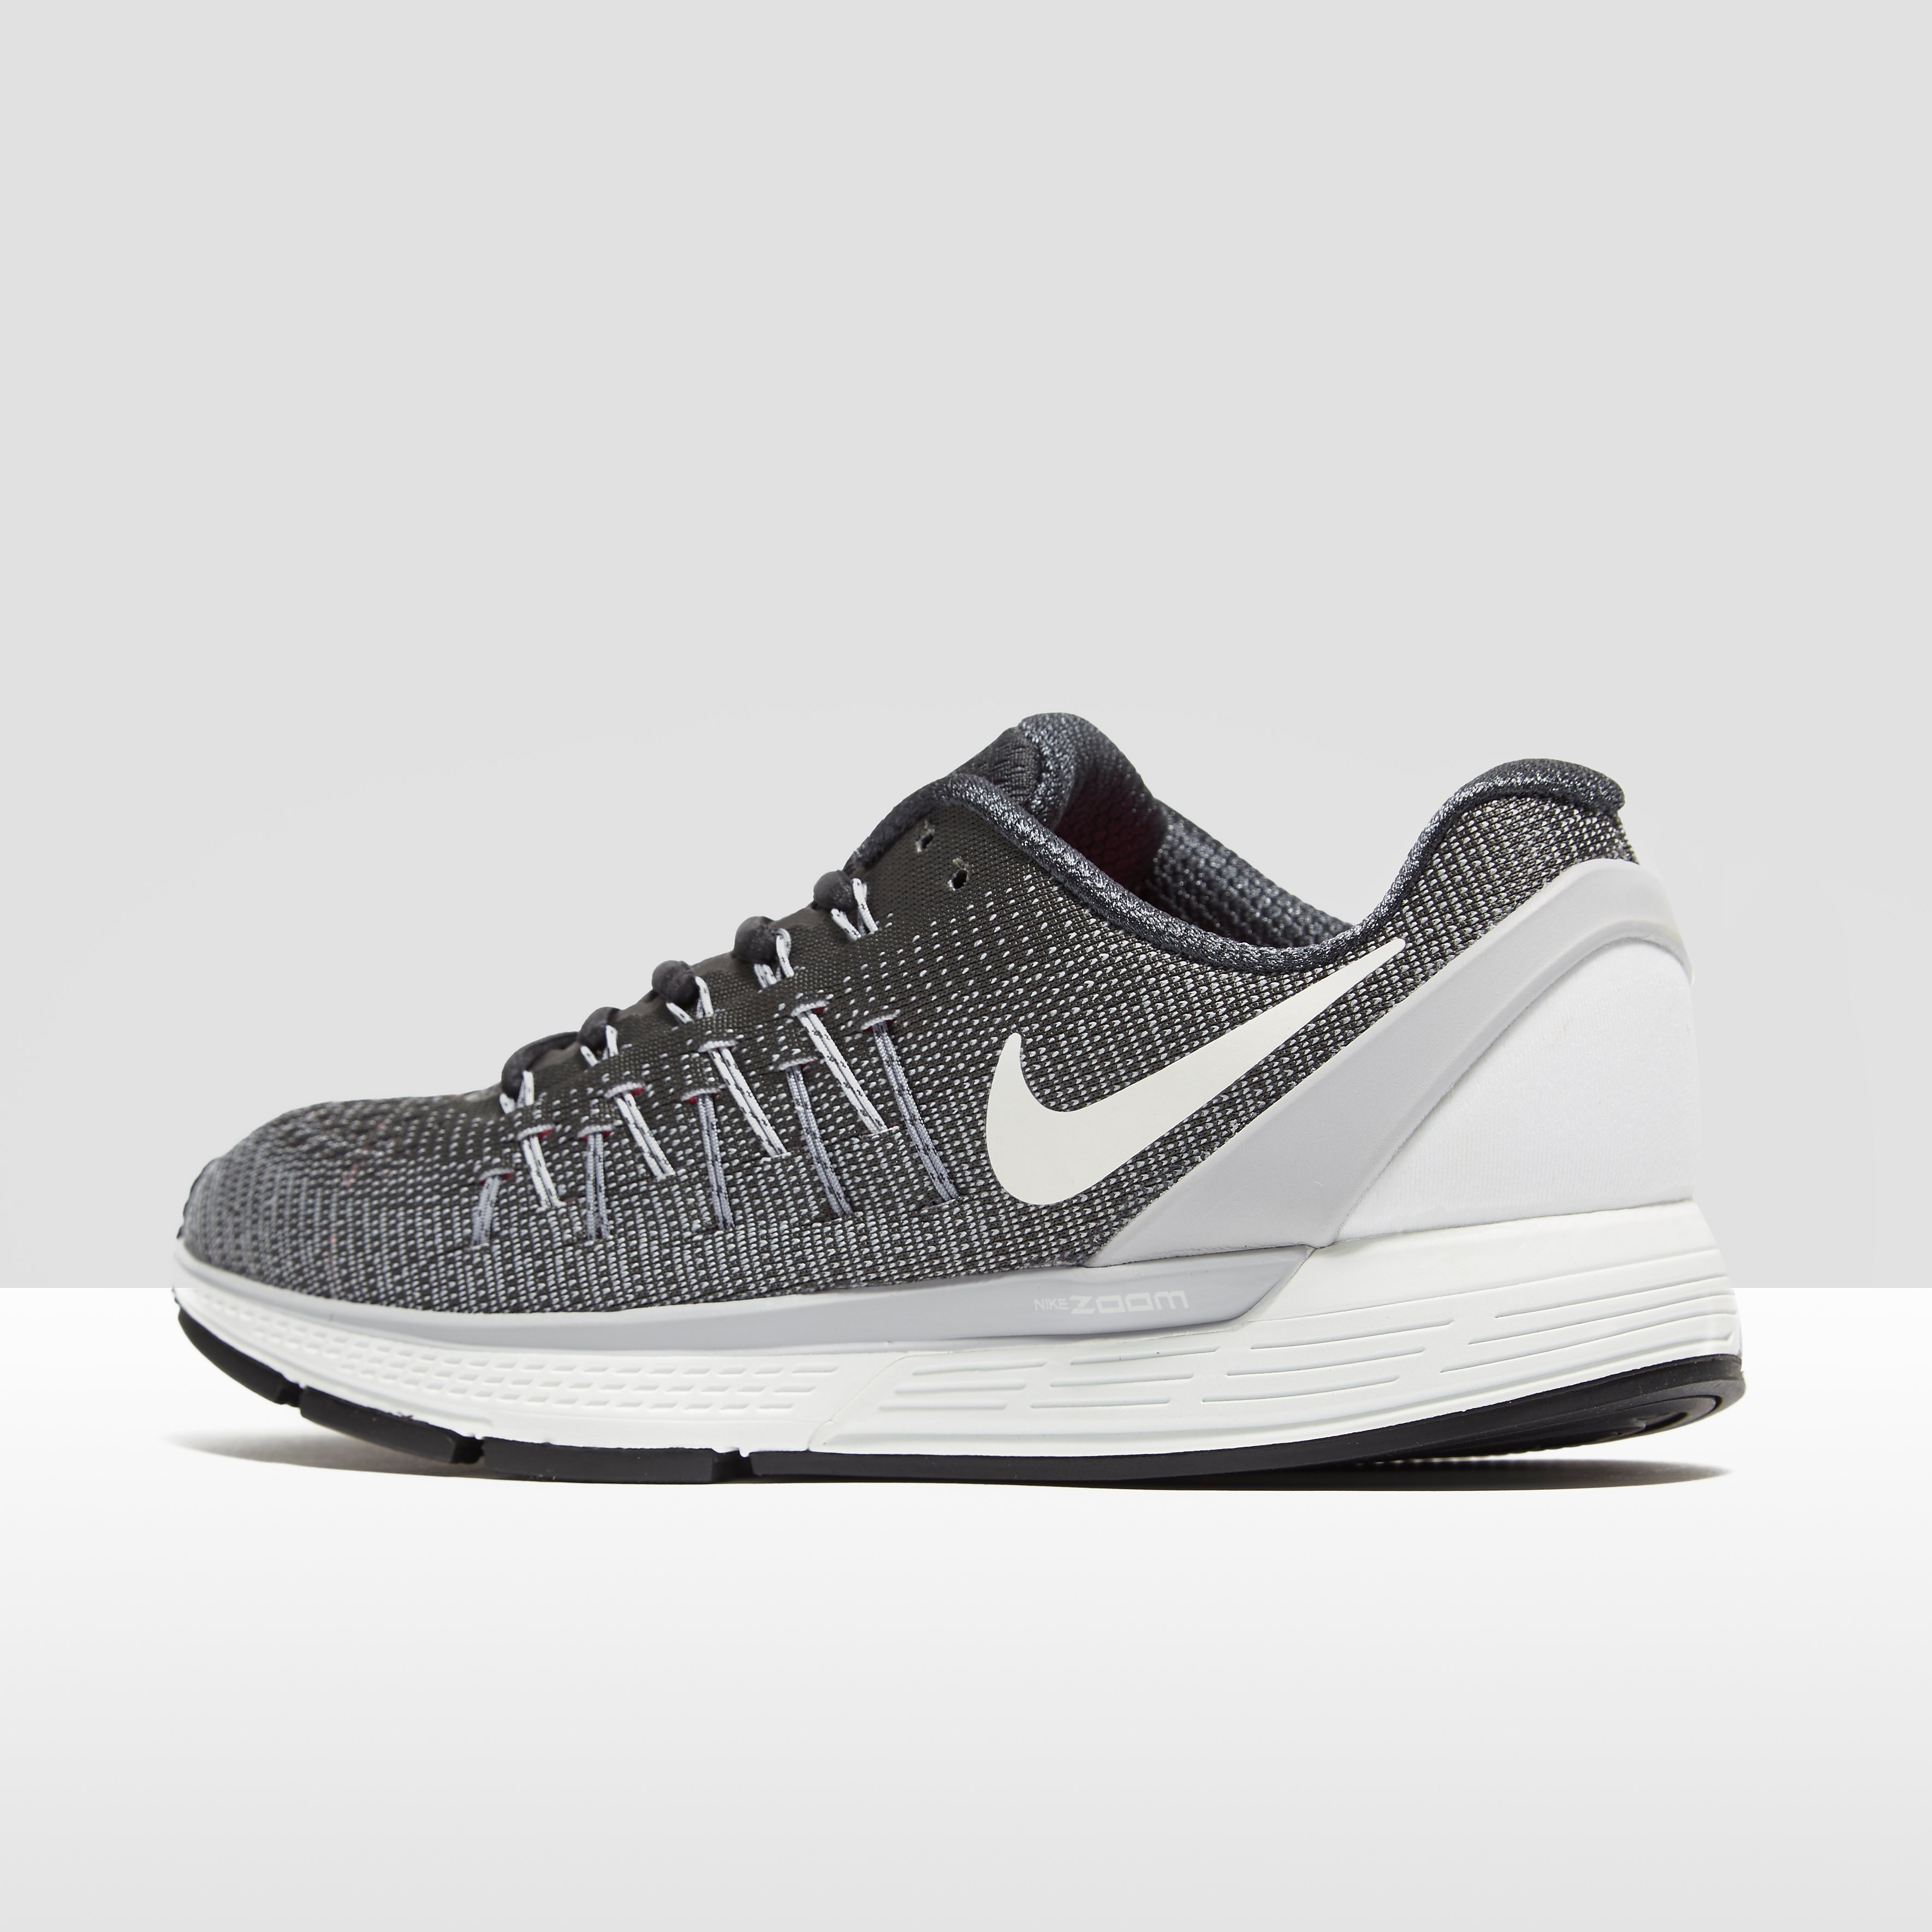 Nike Air Zoom Odysey 2 Women's Running Shoes